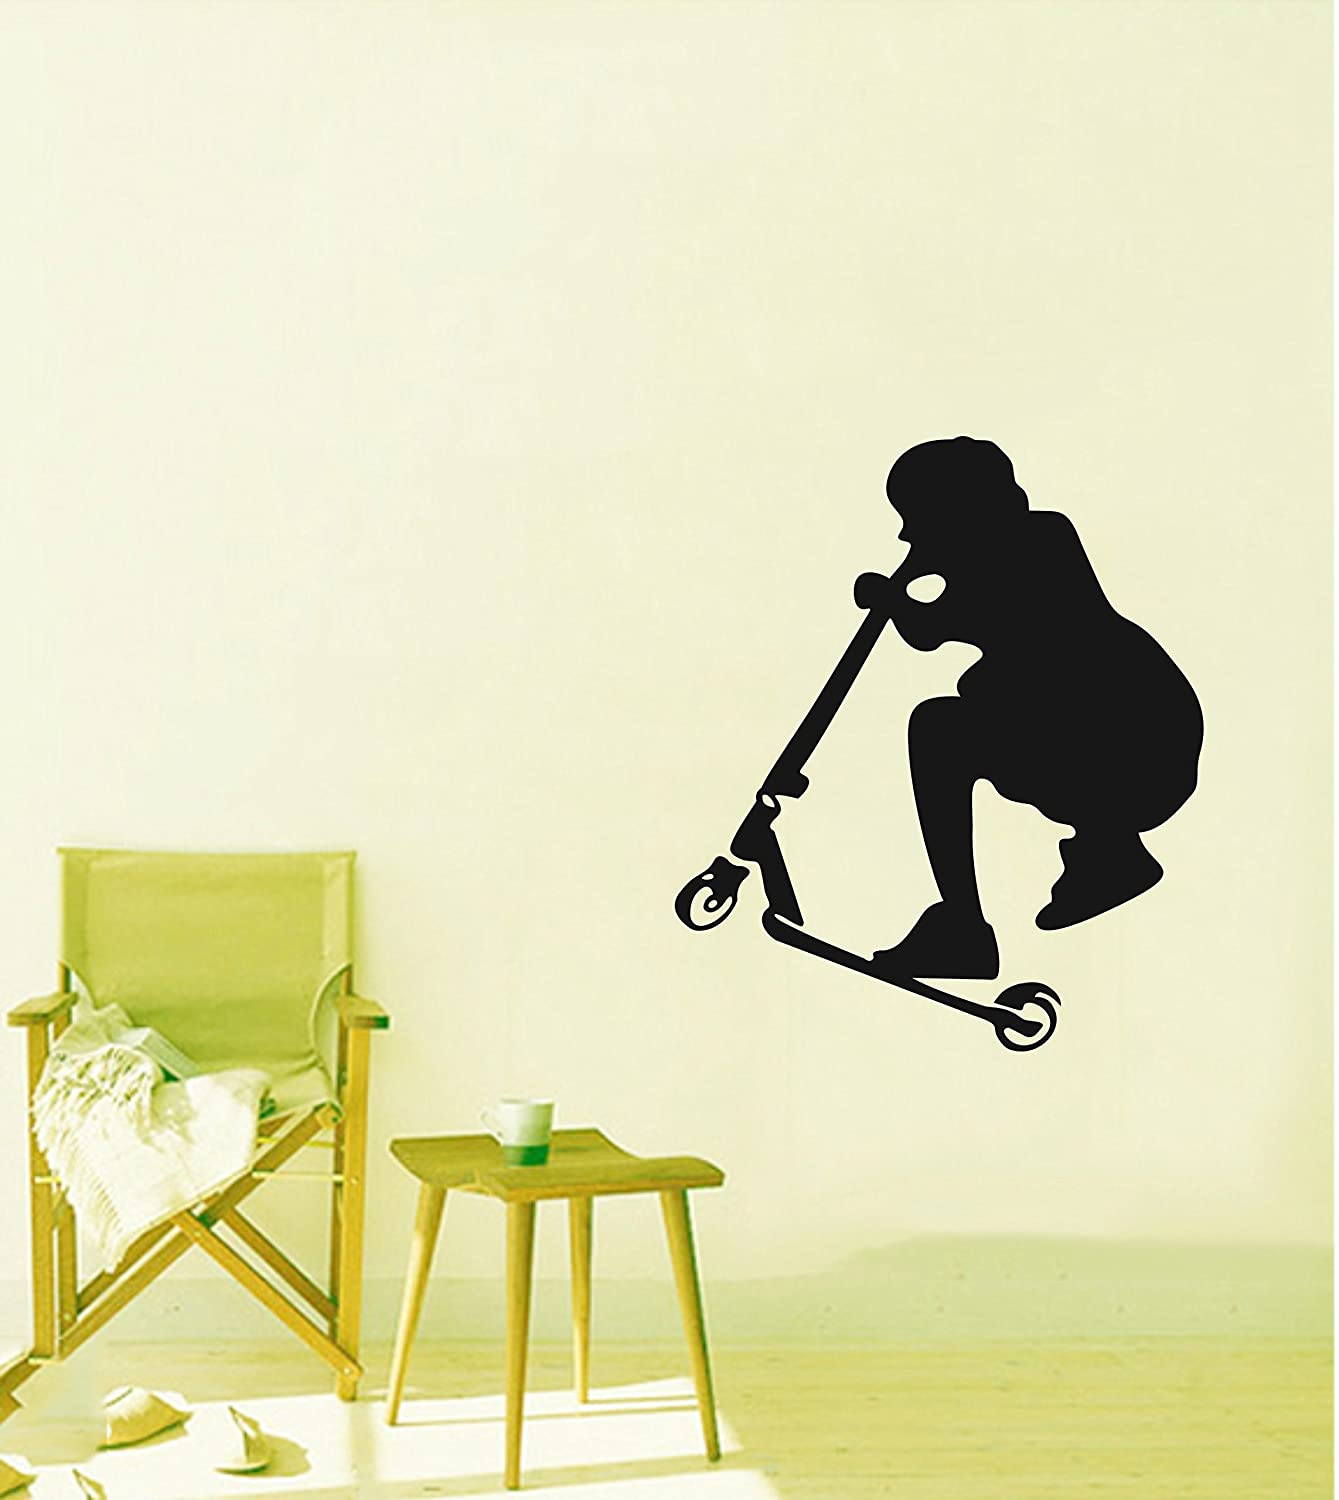 Colorfulhall 217 x 26 wall decor wall sticker vinyl wall colorfulhall 217 x 26 wall decor wall sticker vinyl wall sticker wall art art stickers stunt wall stickers sports and hobbies wall art decal stunt amipublicfo Gallery